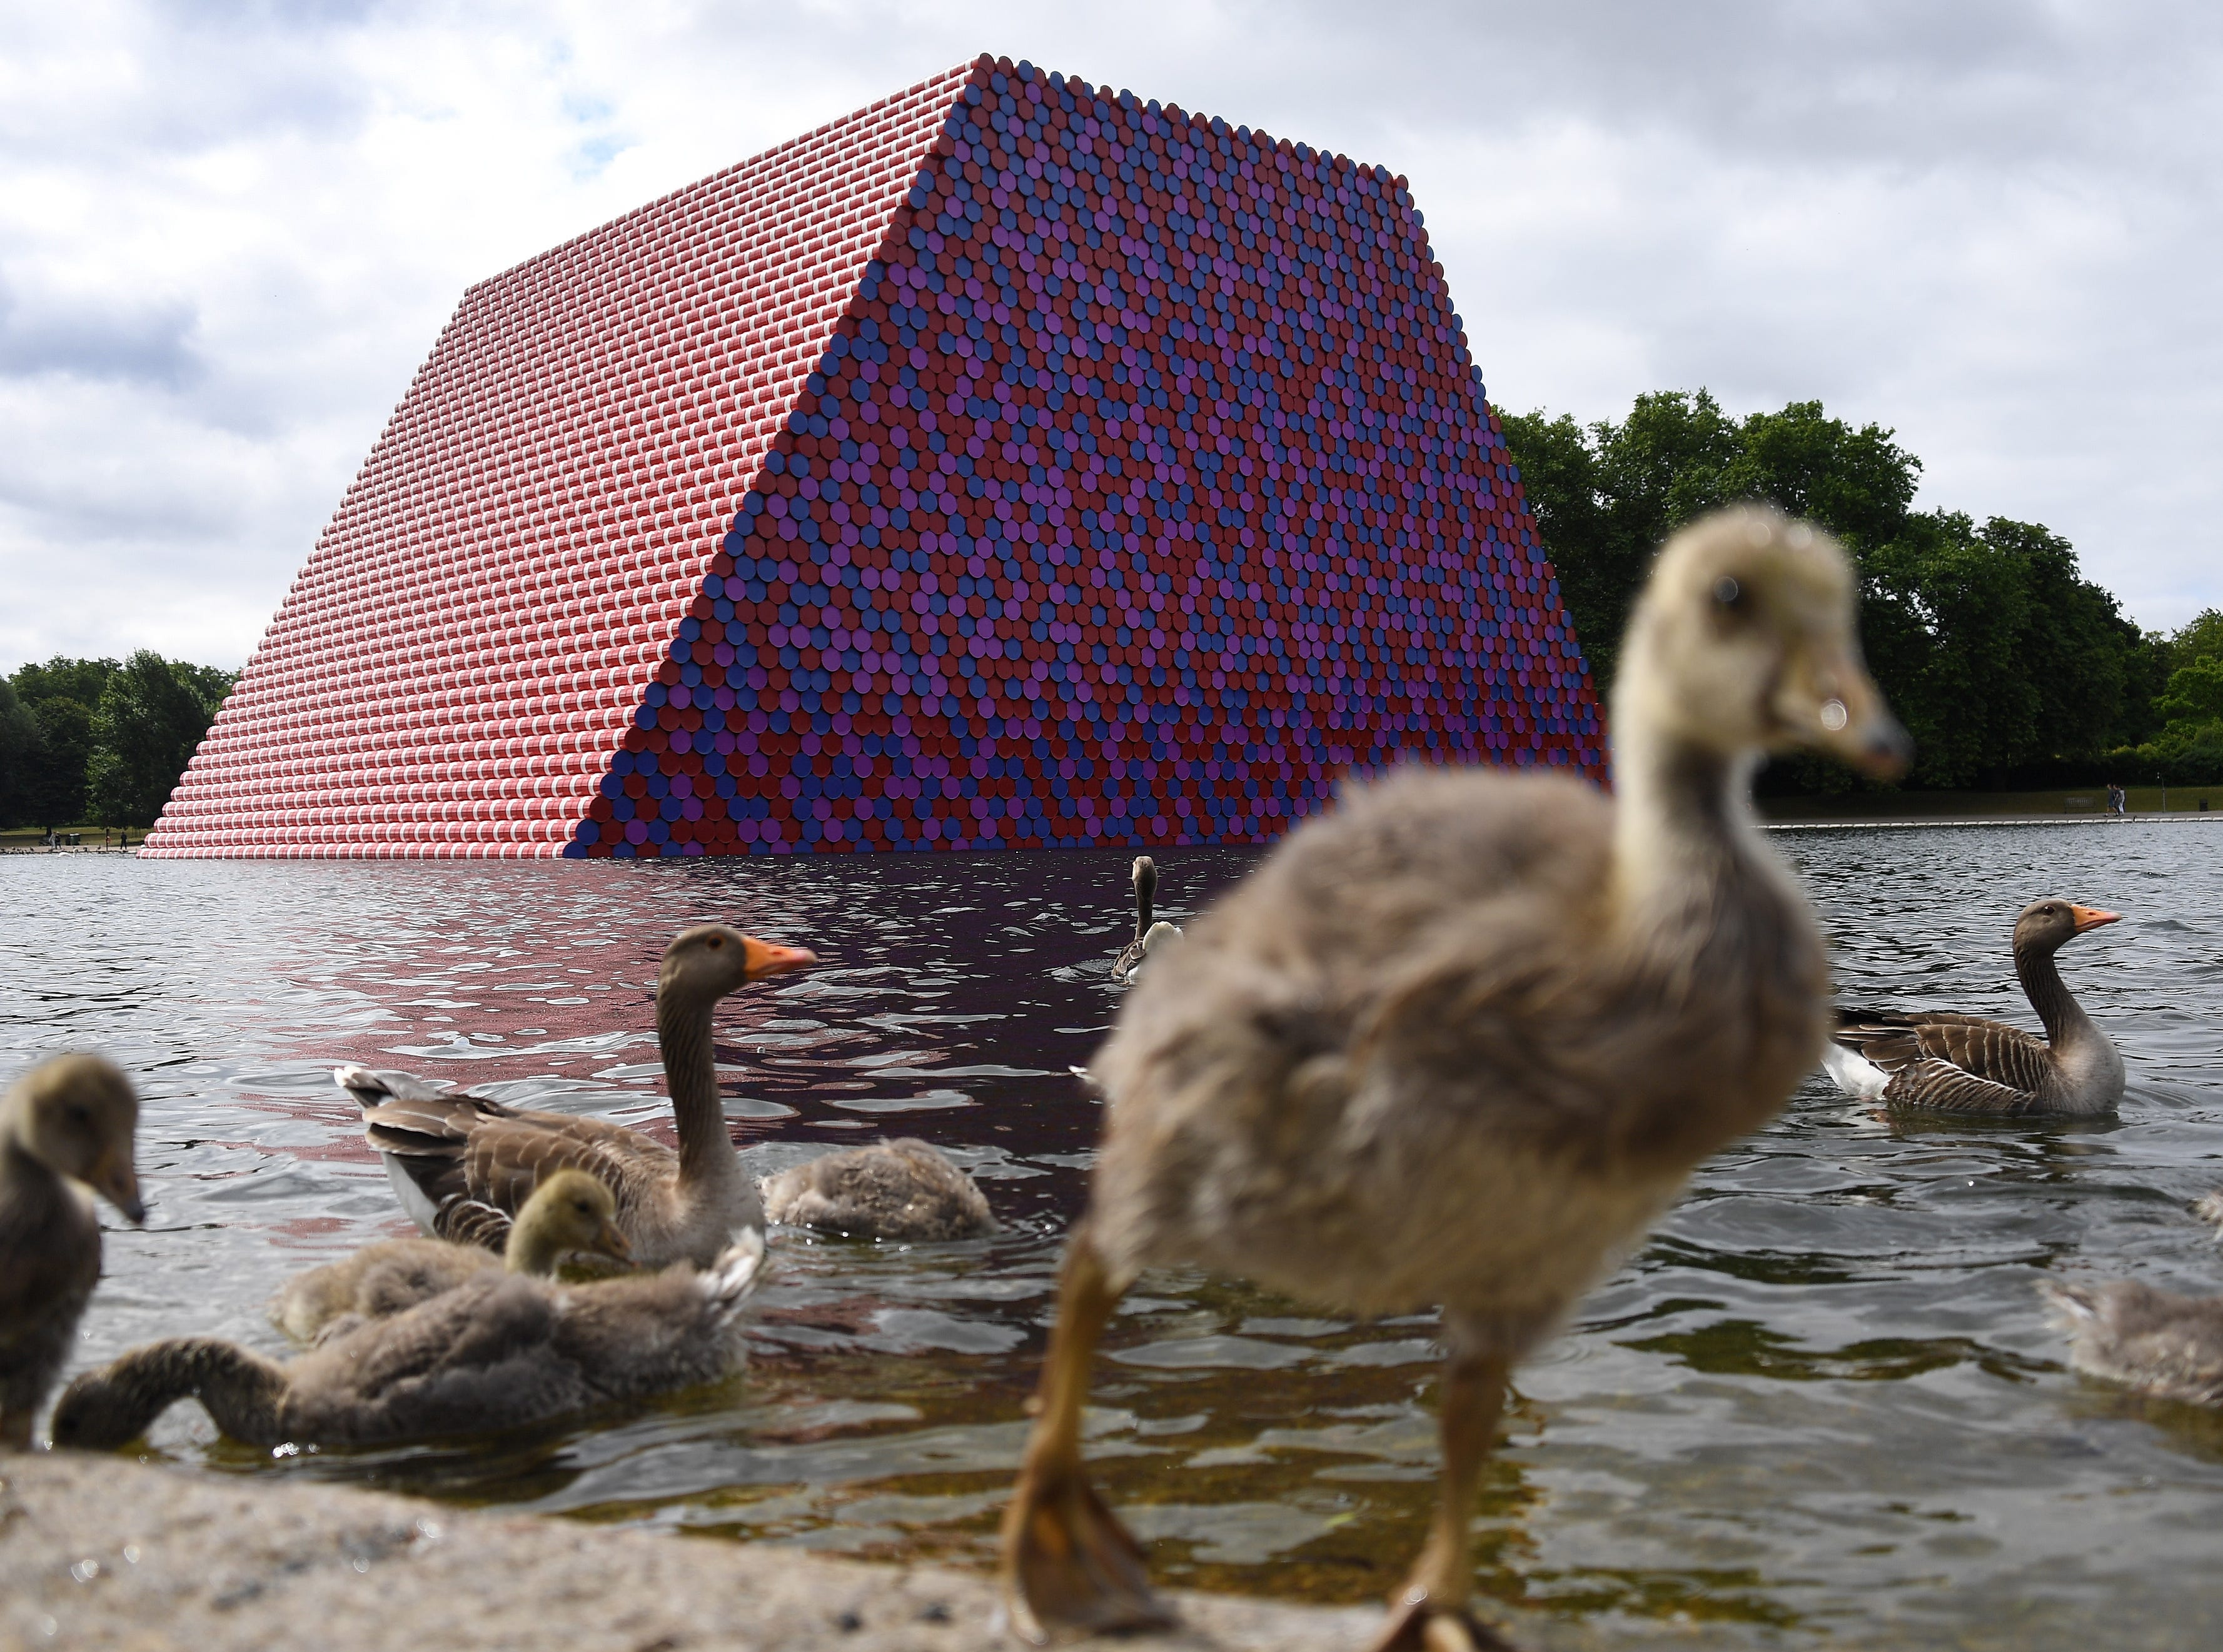 June 18, 2018: A view of the artwork 'Mastaba' by Bulgarian artist Christo, built on The Serpentine lake in London, Britain. Christo has unveiled his enormous floating structure in Hyde Park, which reaches more than 65 feet in height and is made from 7,506 horizontally stacked barrels. It is Christo's first major public outdoor work in Britain.